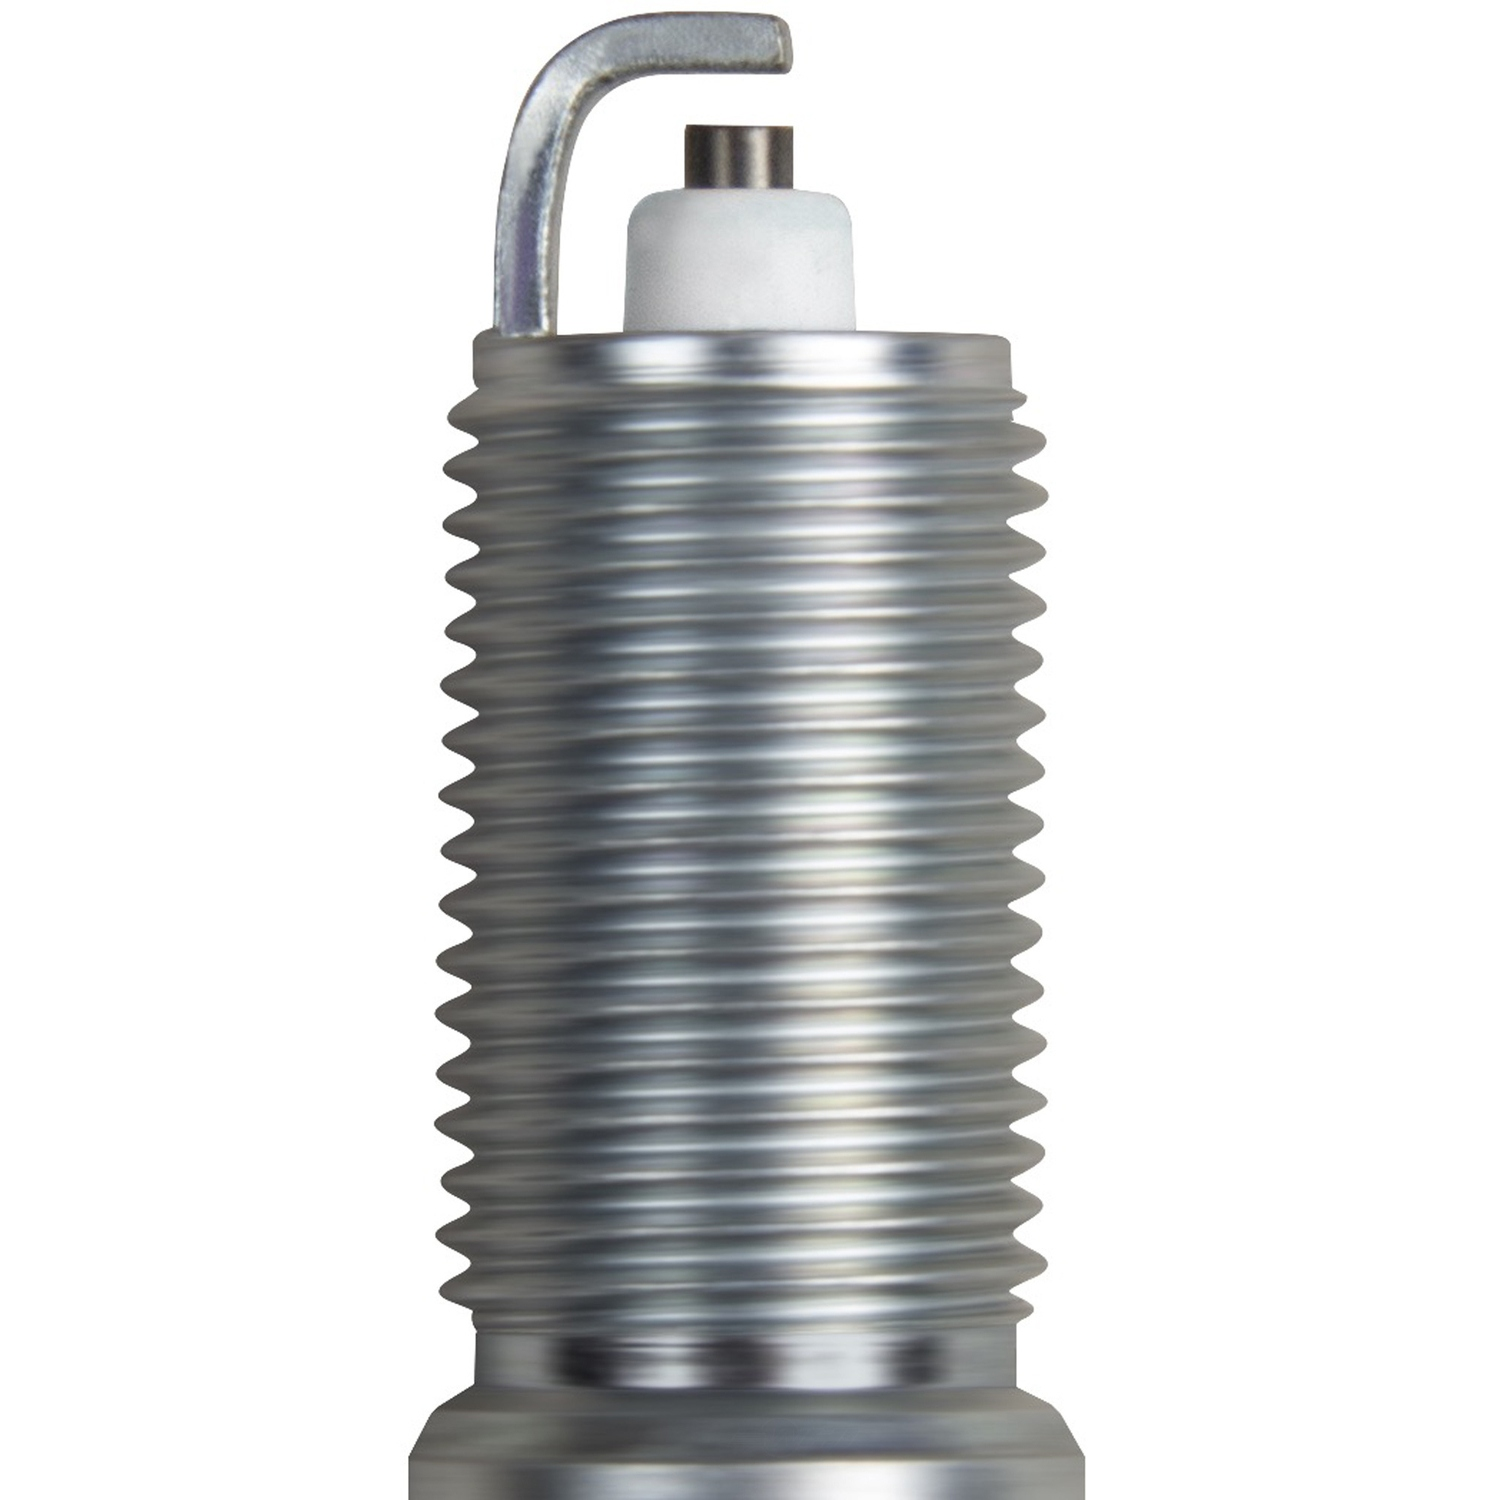 CHAMPION SPARK PLUGS - Copper Plus Spark Plug - CHA 570